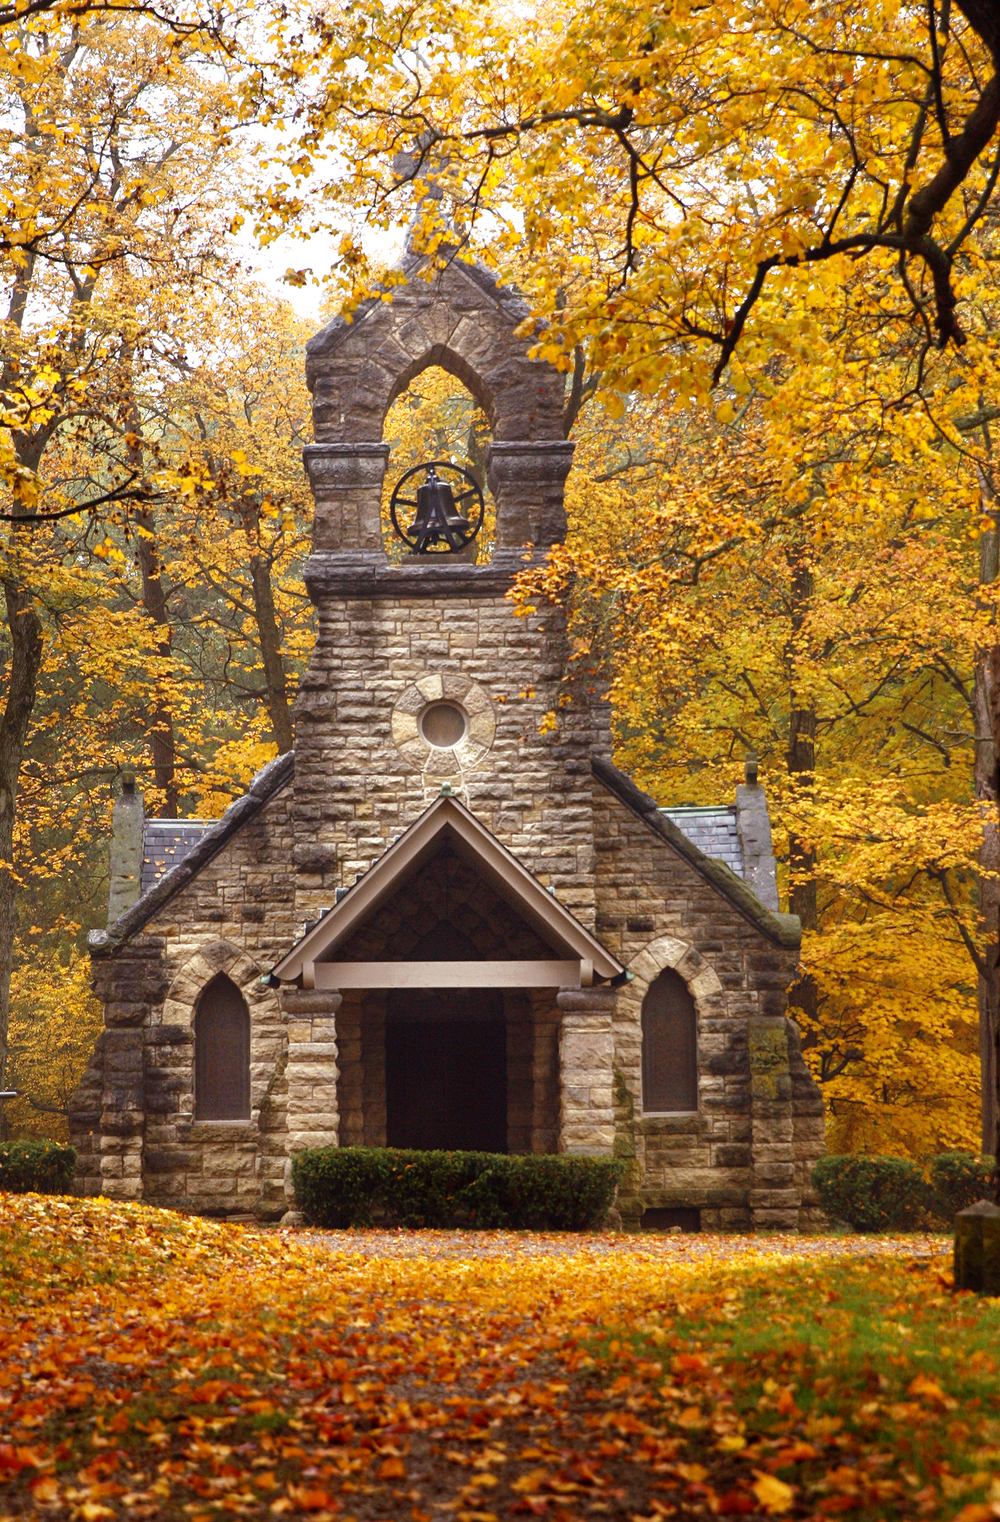 Colorful fall foilage envelopes St. John The Baptist Chapel on Elkhart Hill Wednesday, Oct. 30, 2013. The Gothic revival-style chapel, built mostly with limestone blocks by the Culver Stone and Marble Co. of Springfield for about $10,000 in 1890, is the only privately owned and operated church in Illinois. Ted Schurter/The State Journal-Register